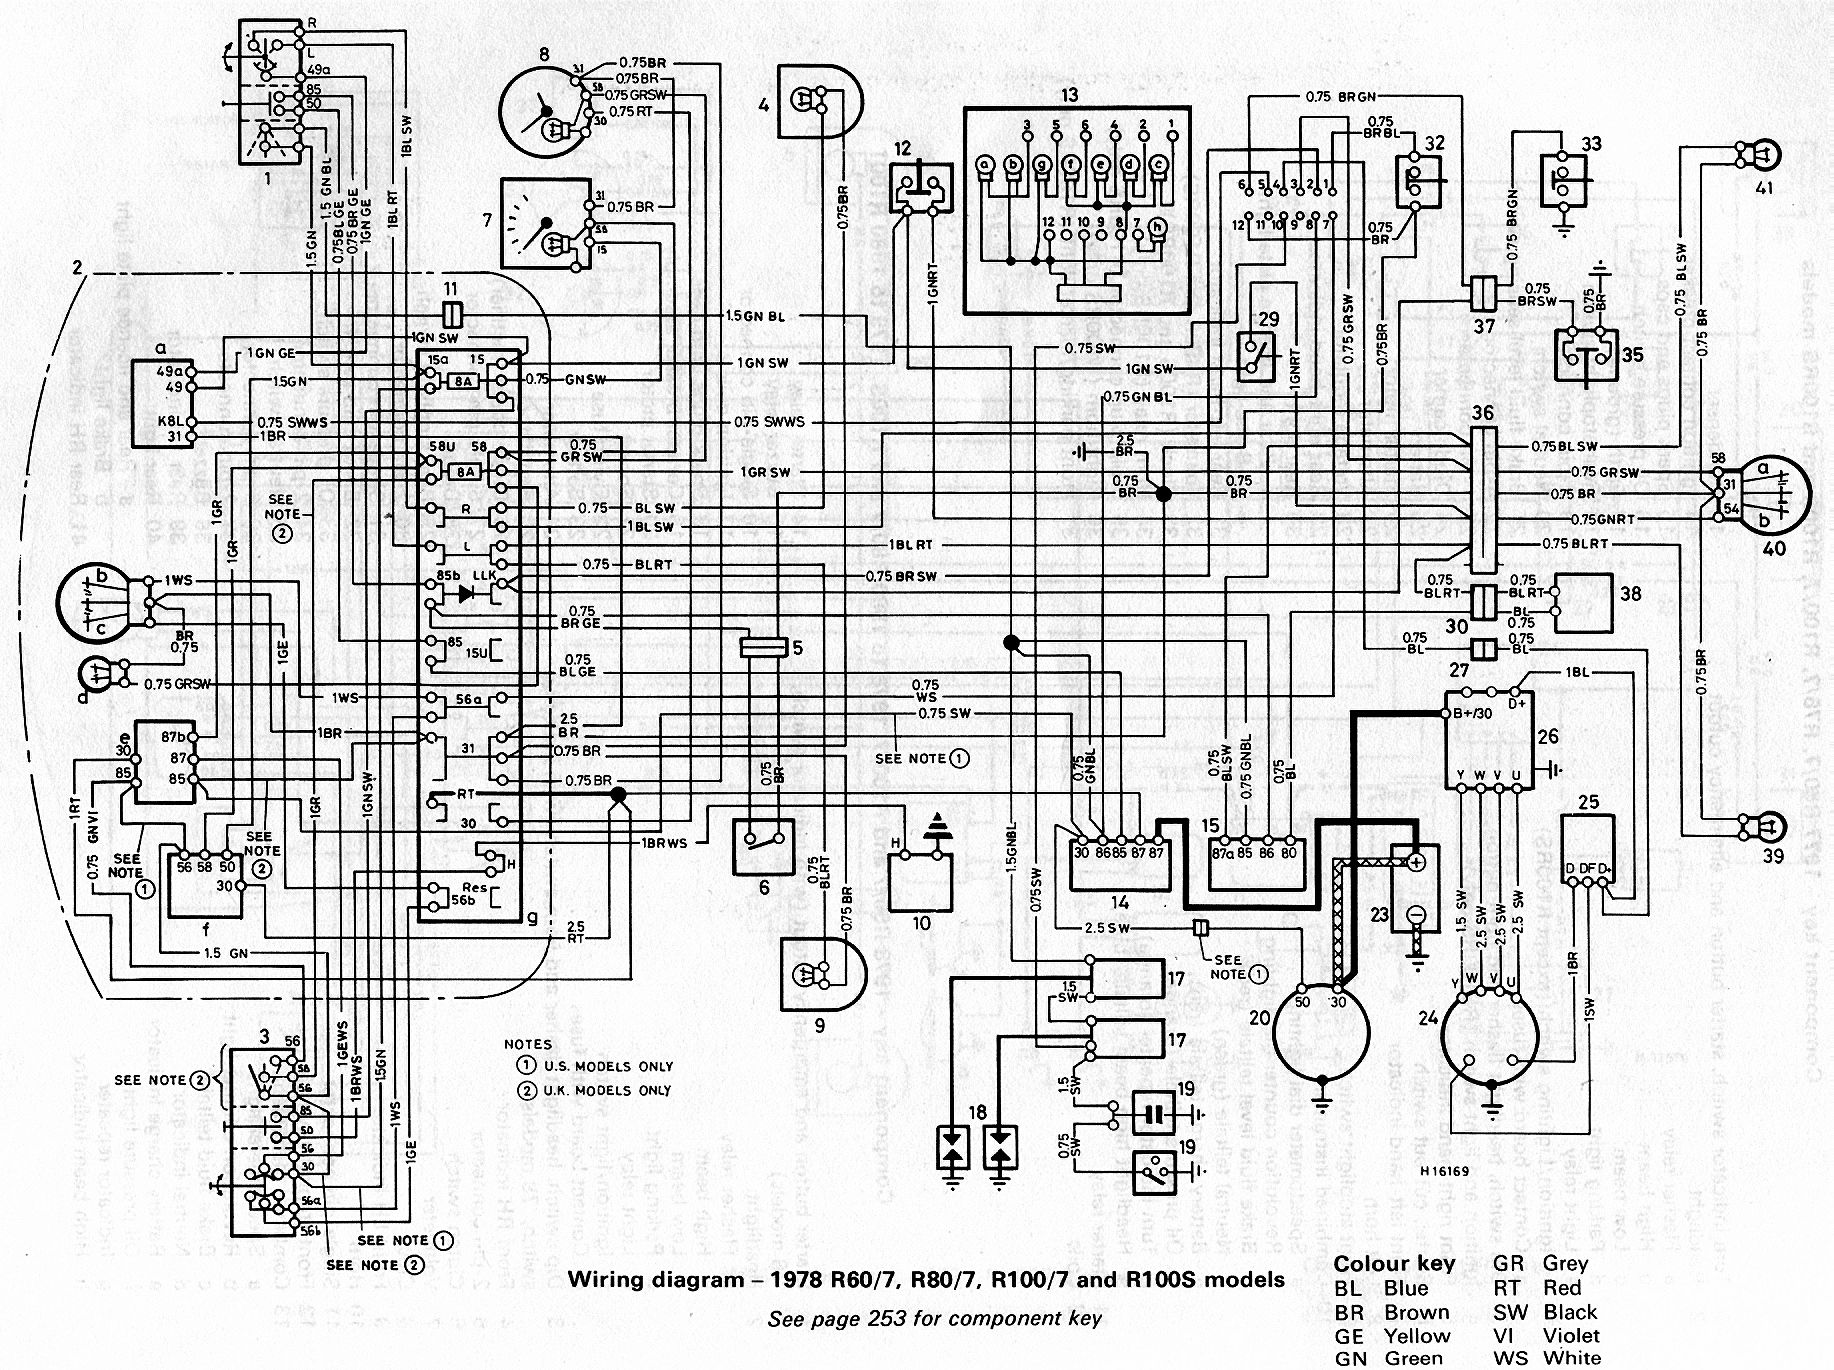 bmw 1984 r807 wiring diagram | Chassis Wire Harness BMW R